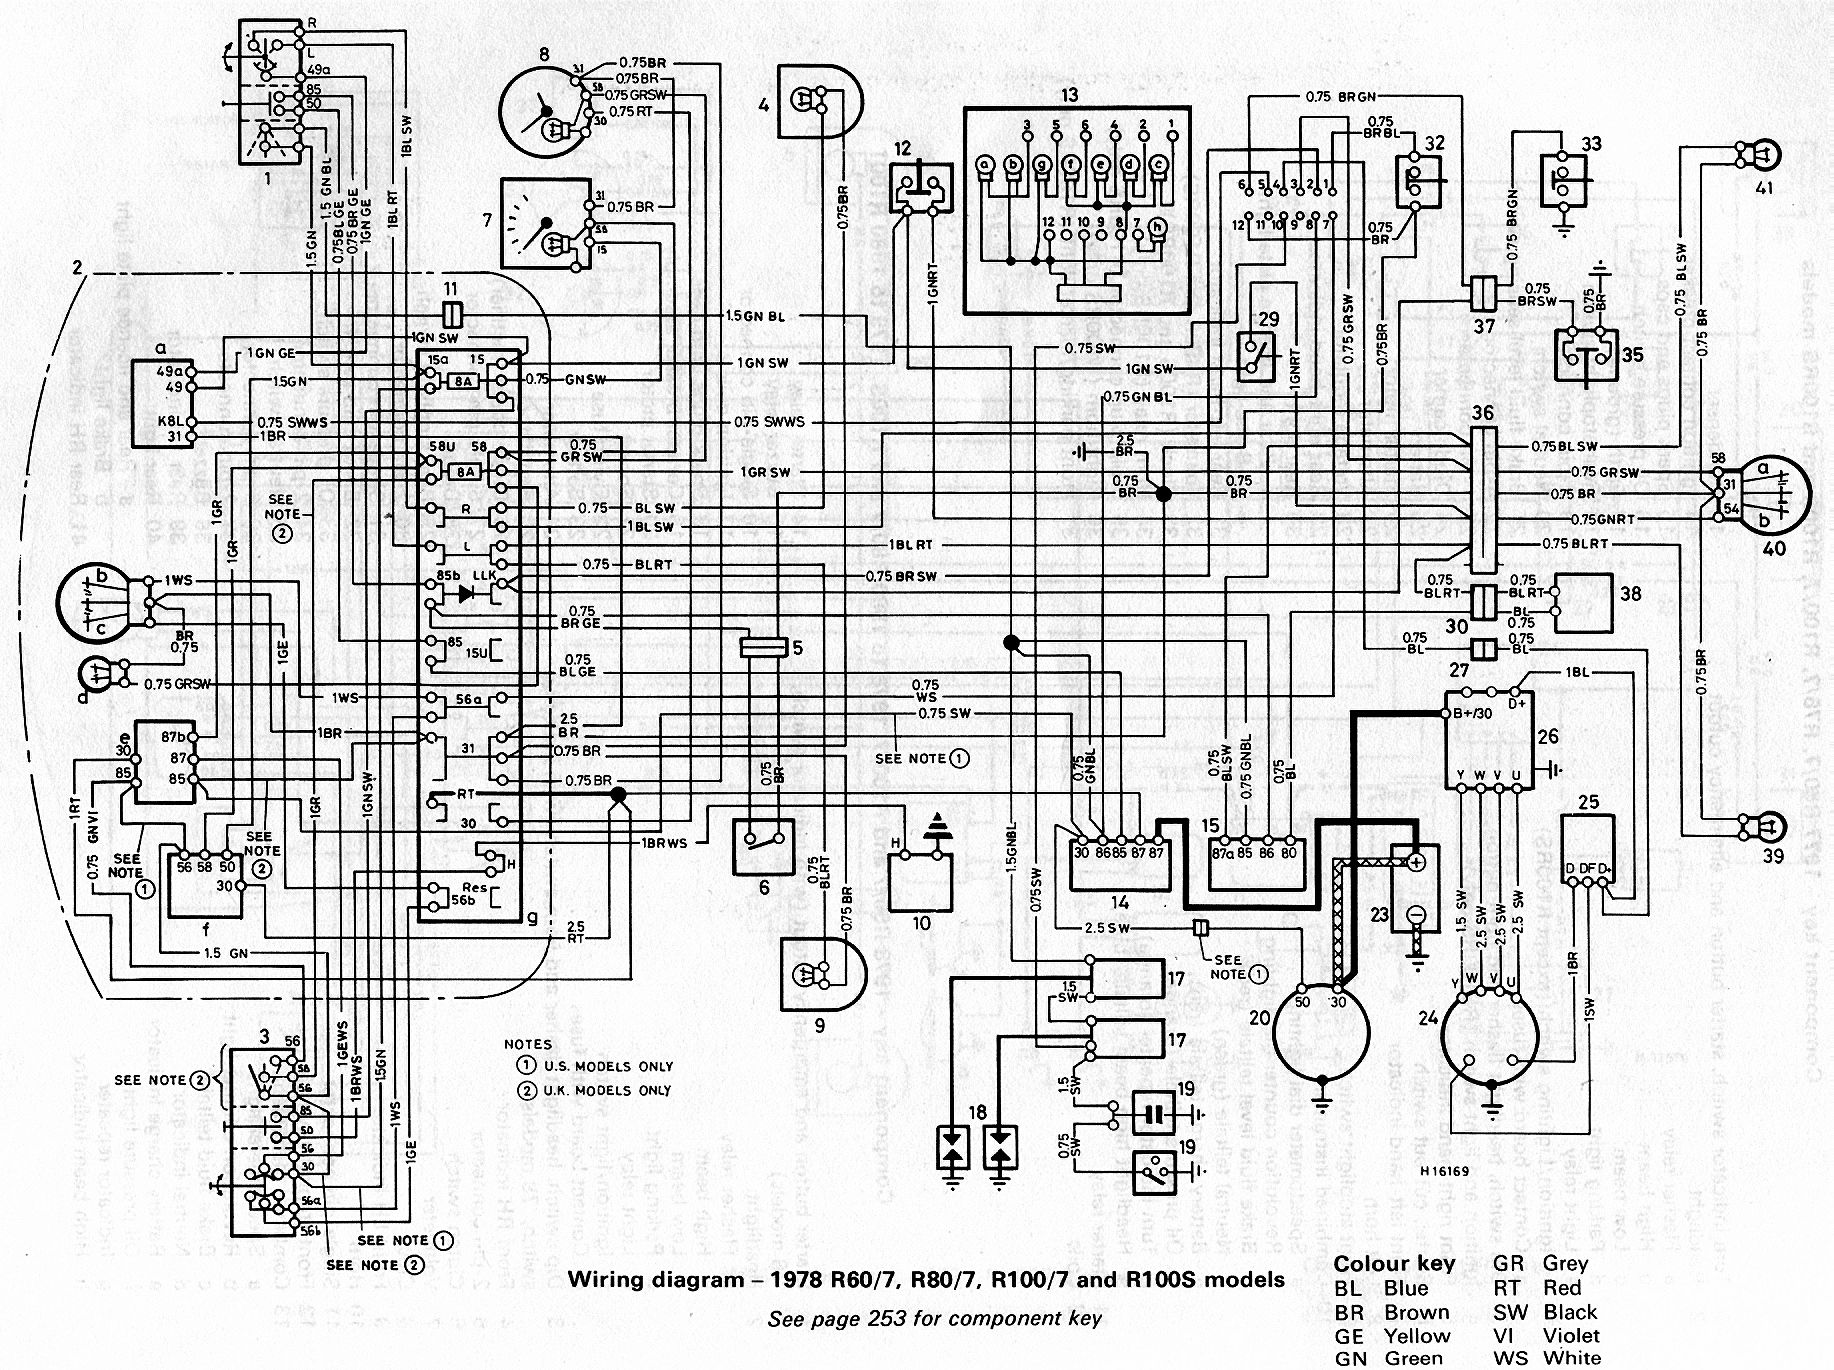 bmw 1984 r807 wiring diagram | Chassis Wire Harness BMW R